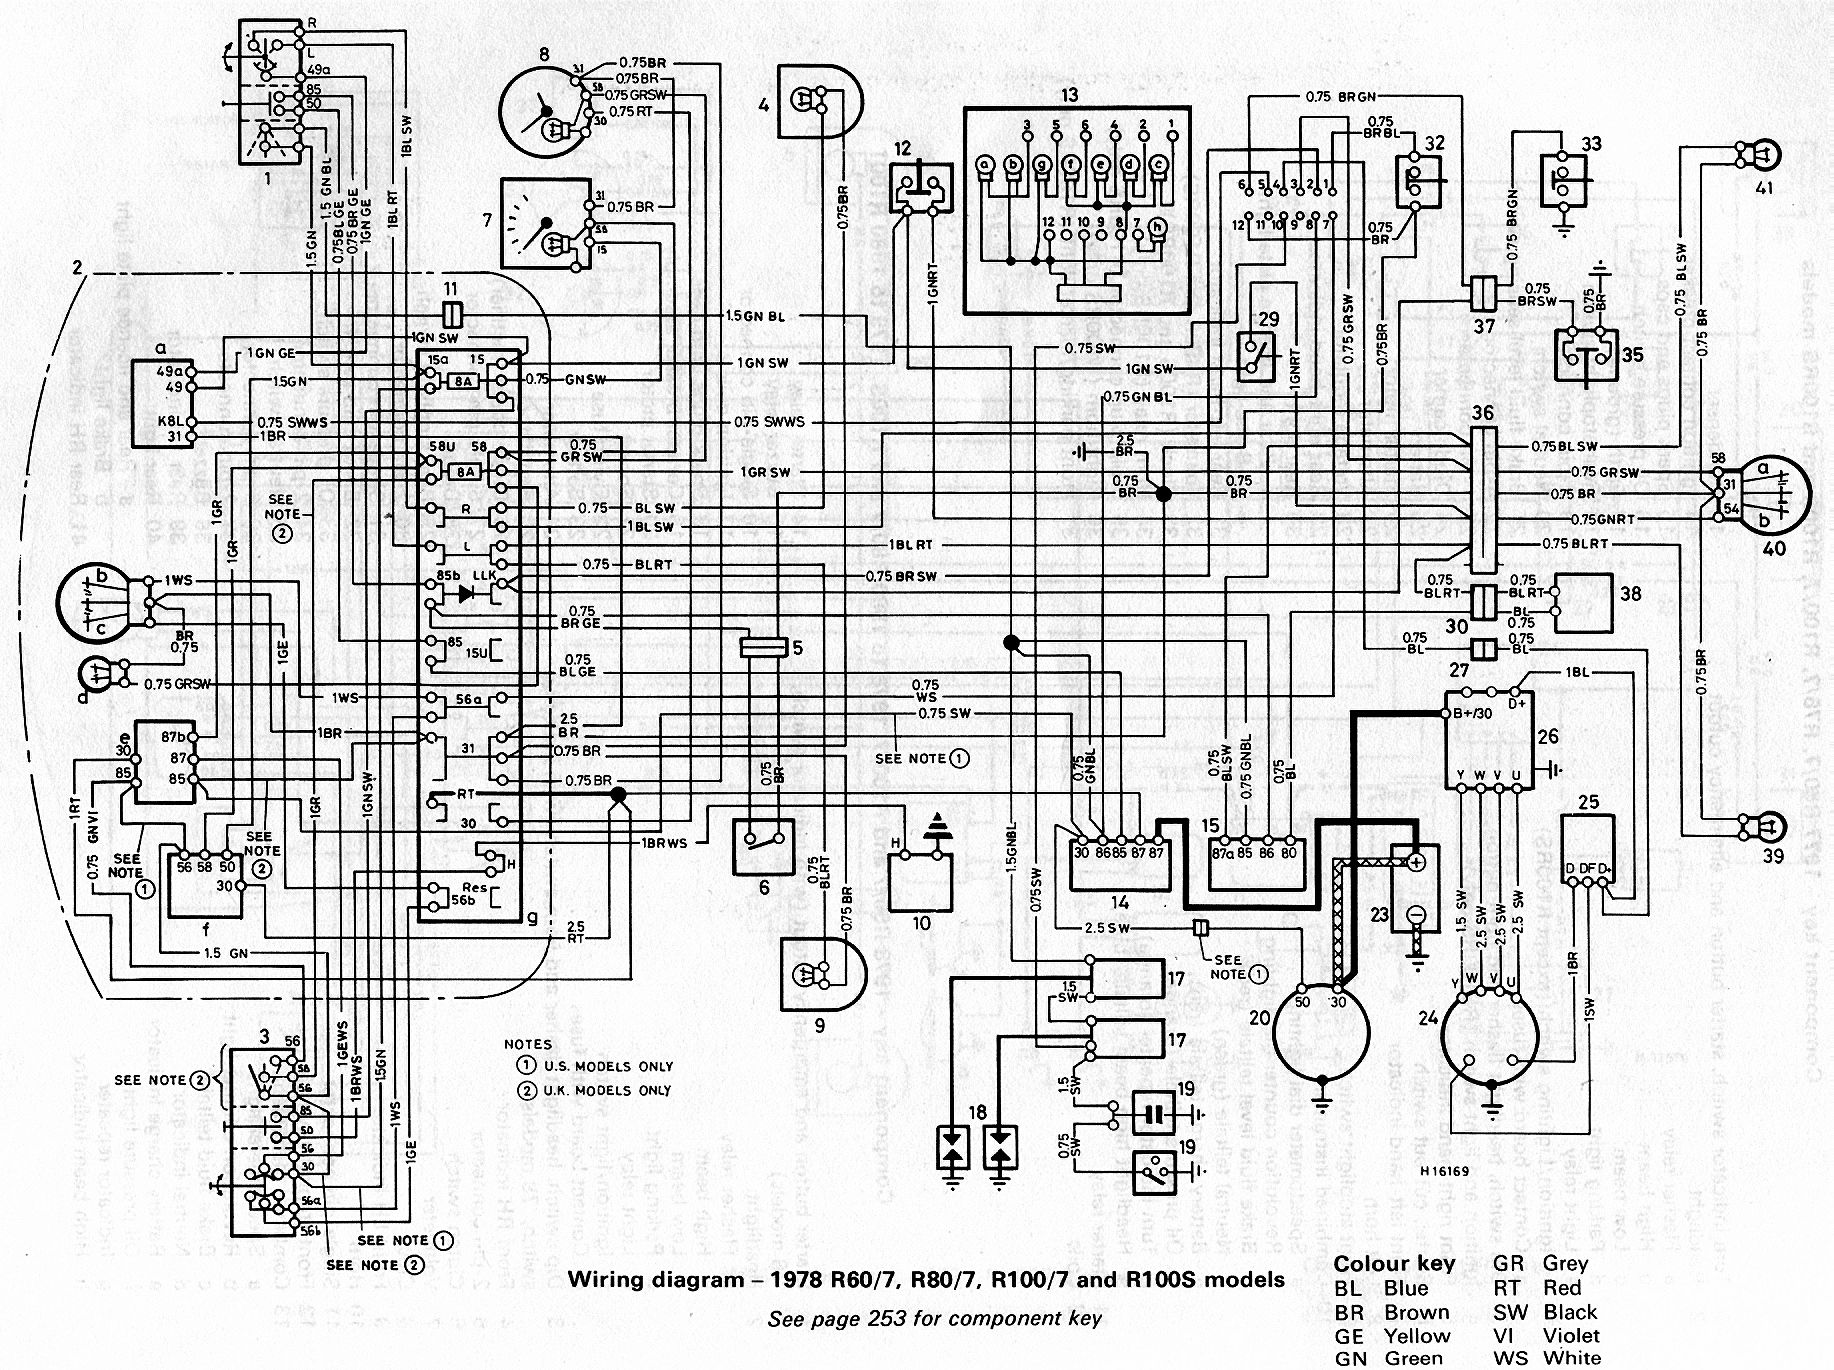 bmw 1984 r807 wiring diagram | Chassis Wire Harness BMW R